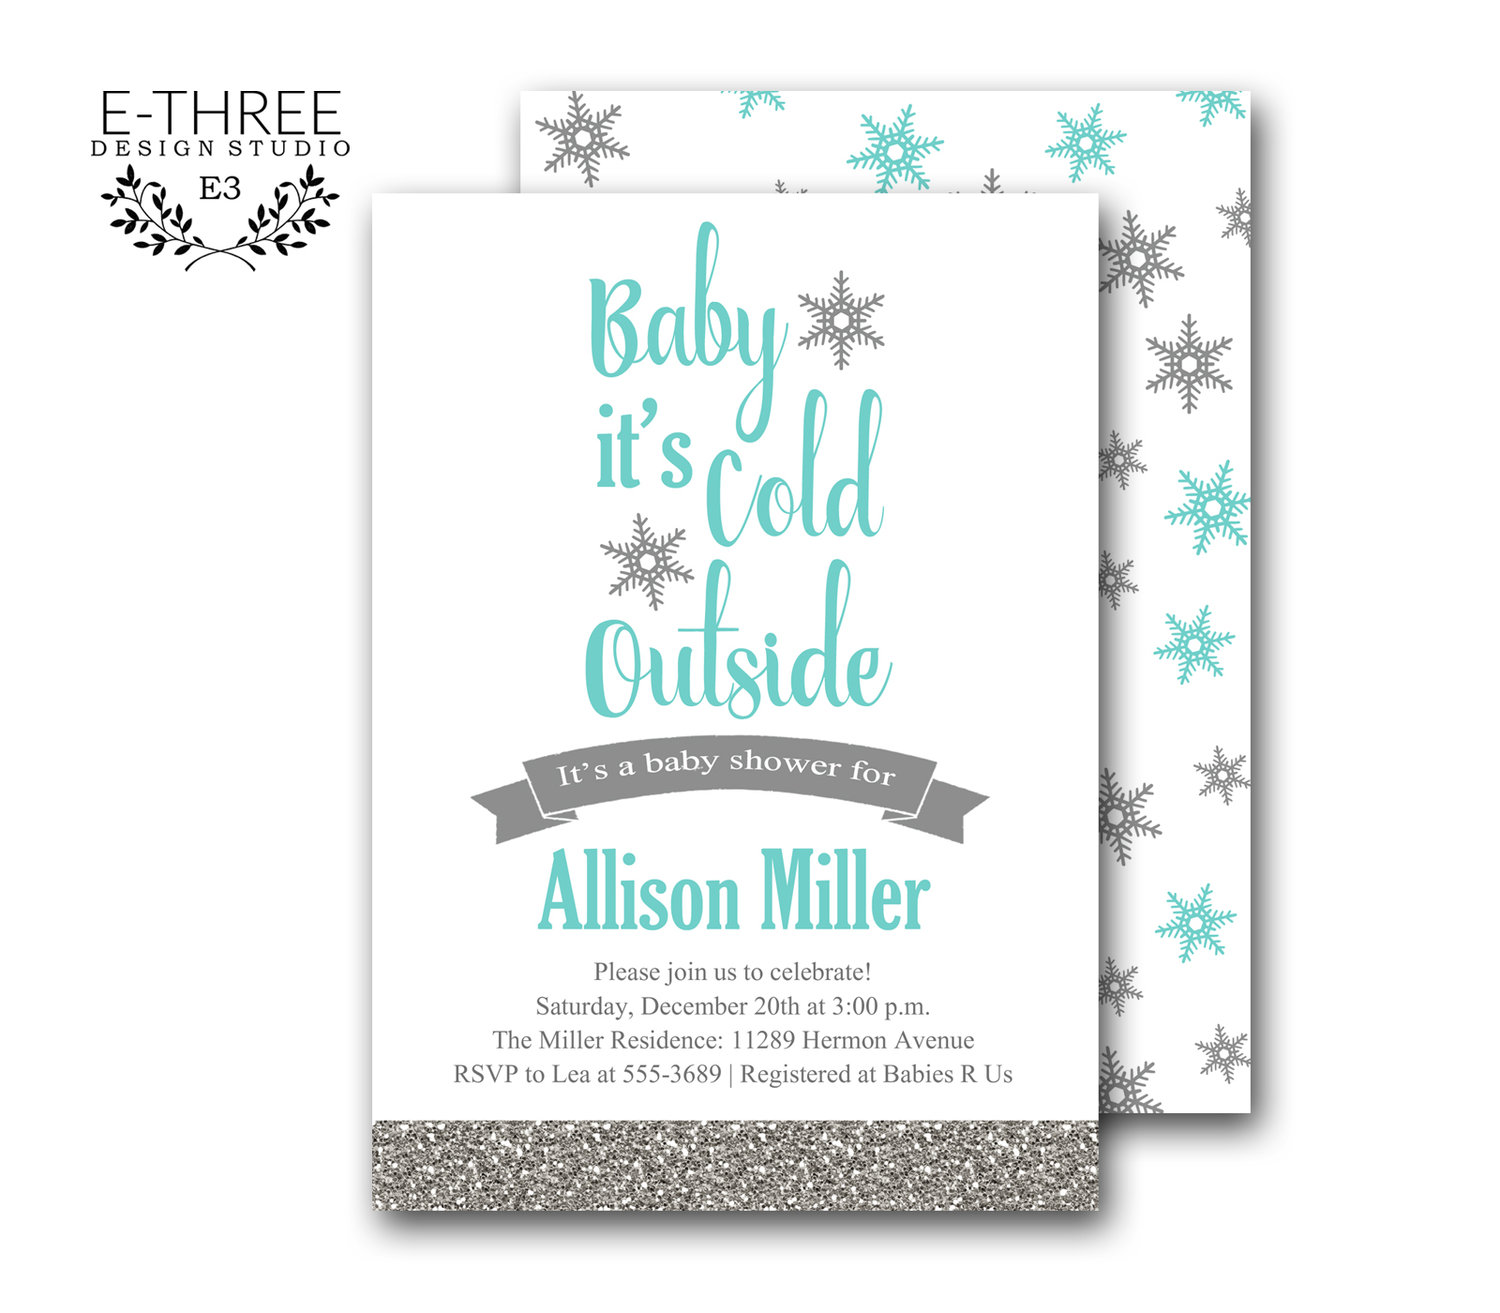 Winter baby shower invitations baby boy shower invite baby its winter baby shower invitations baby boy shower invite baby its cold outside shower little snowflake silver glitter aqua blue filmwisefo